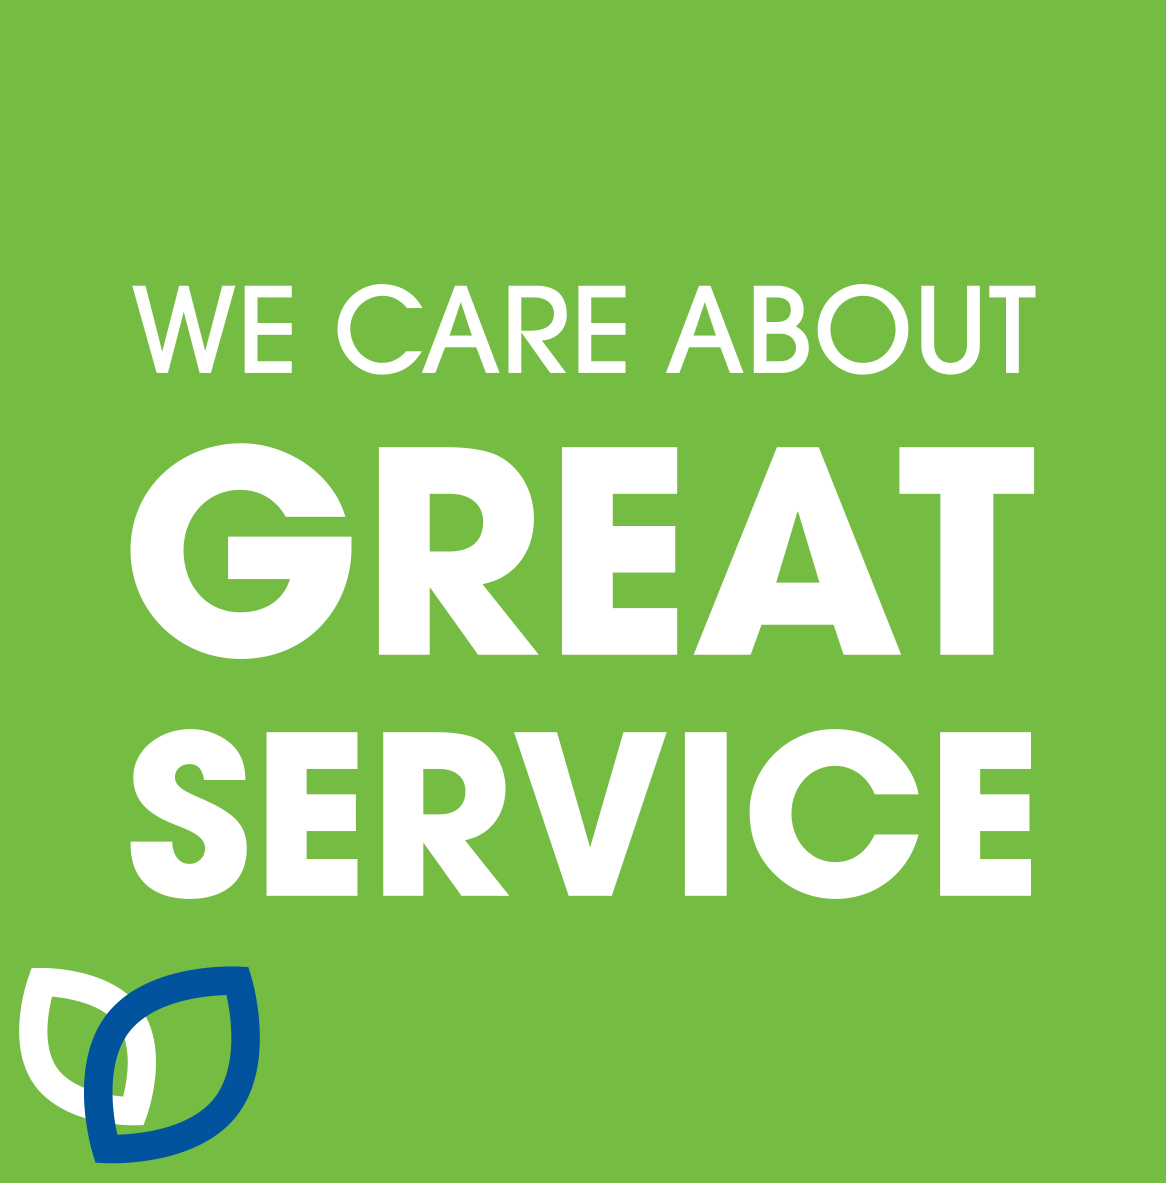 We care about great service - dental services